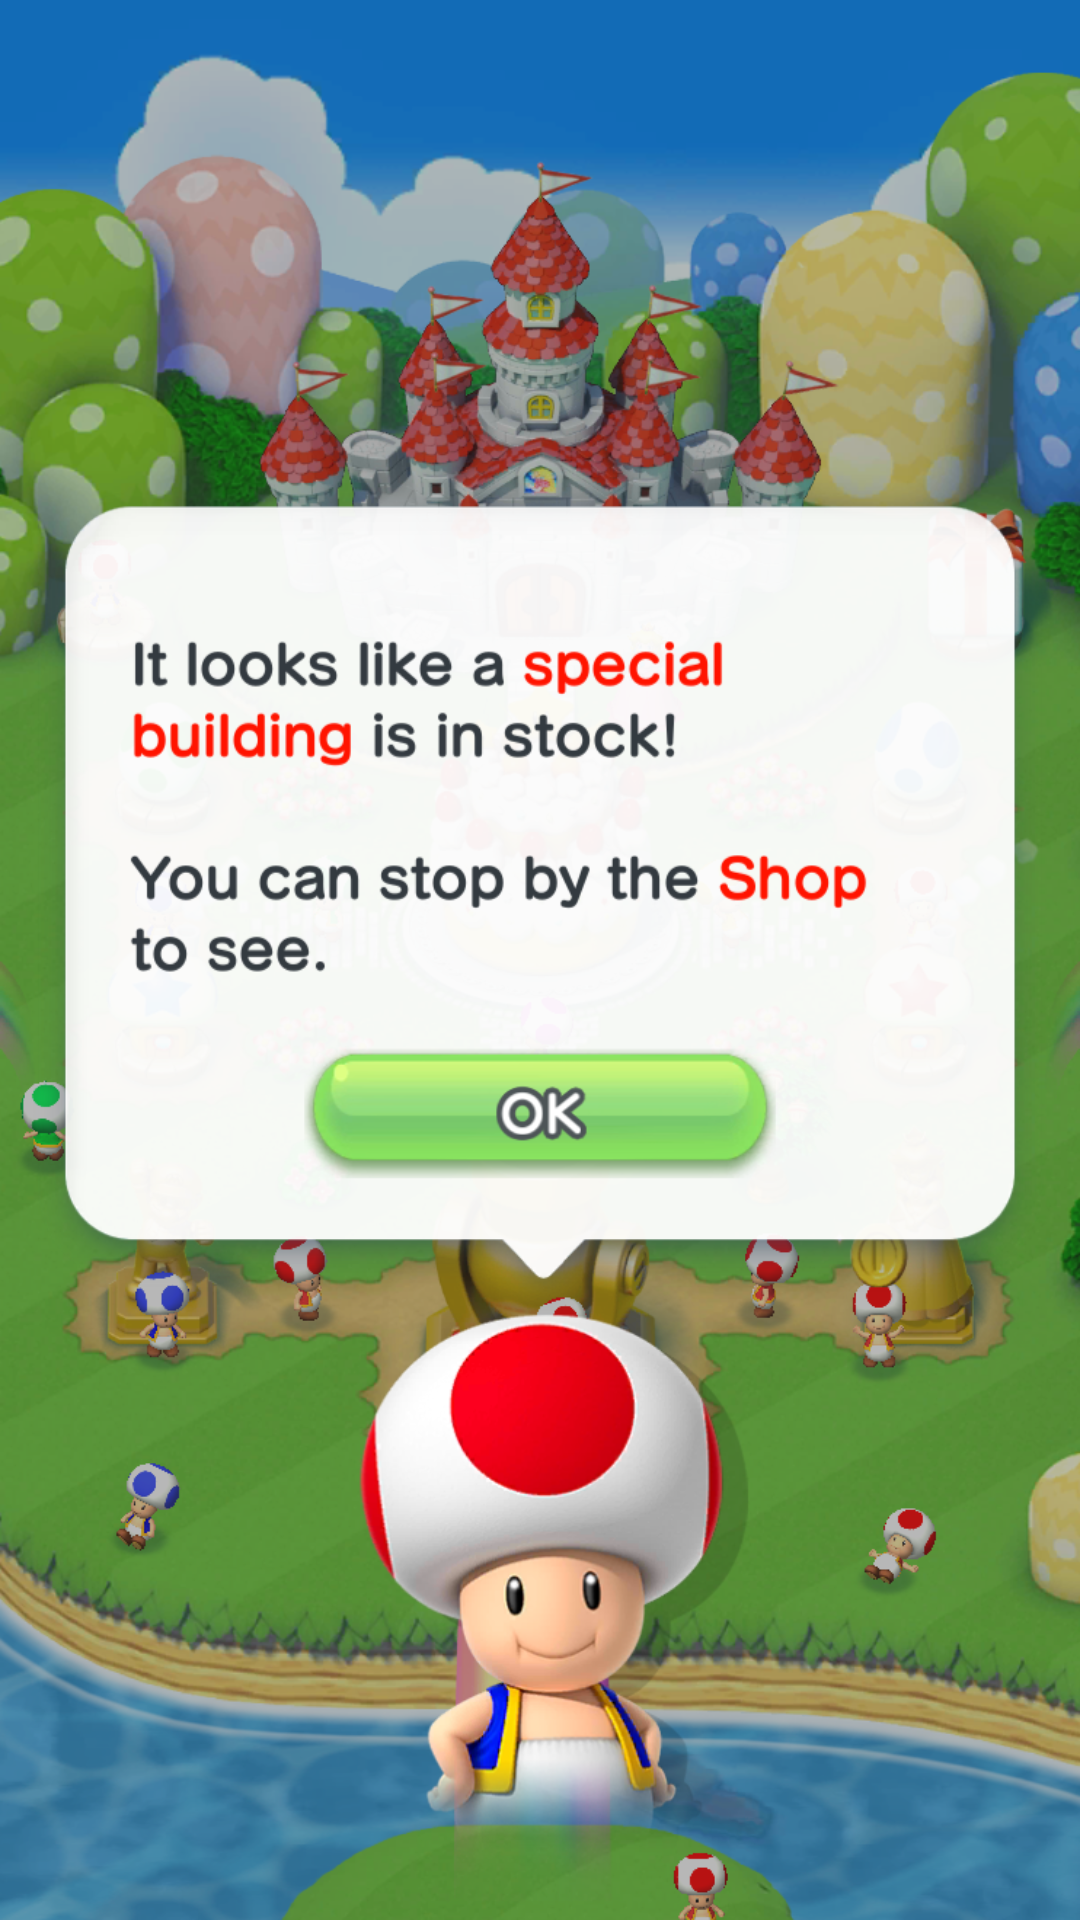 If you have unlocked a special building, then Toad helpfully tells you how to get it.